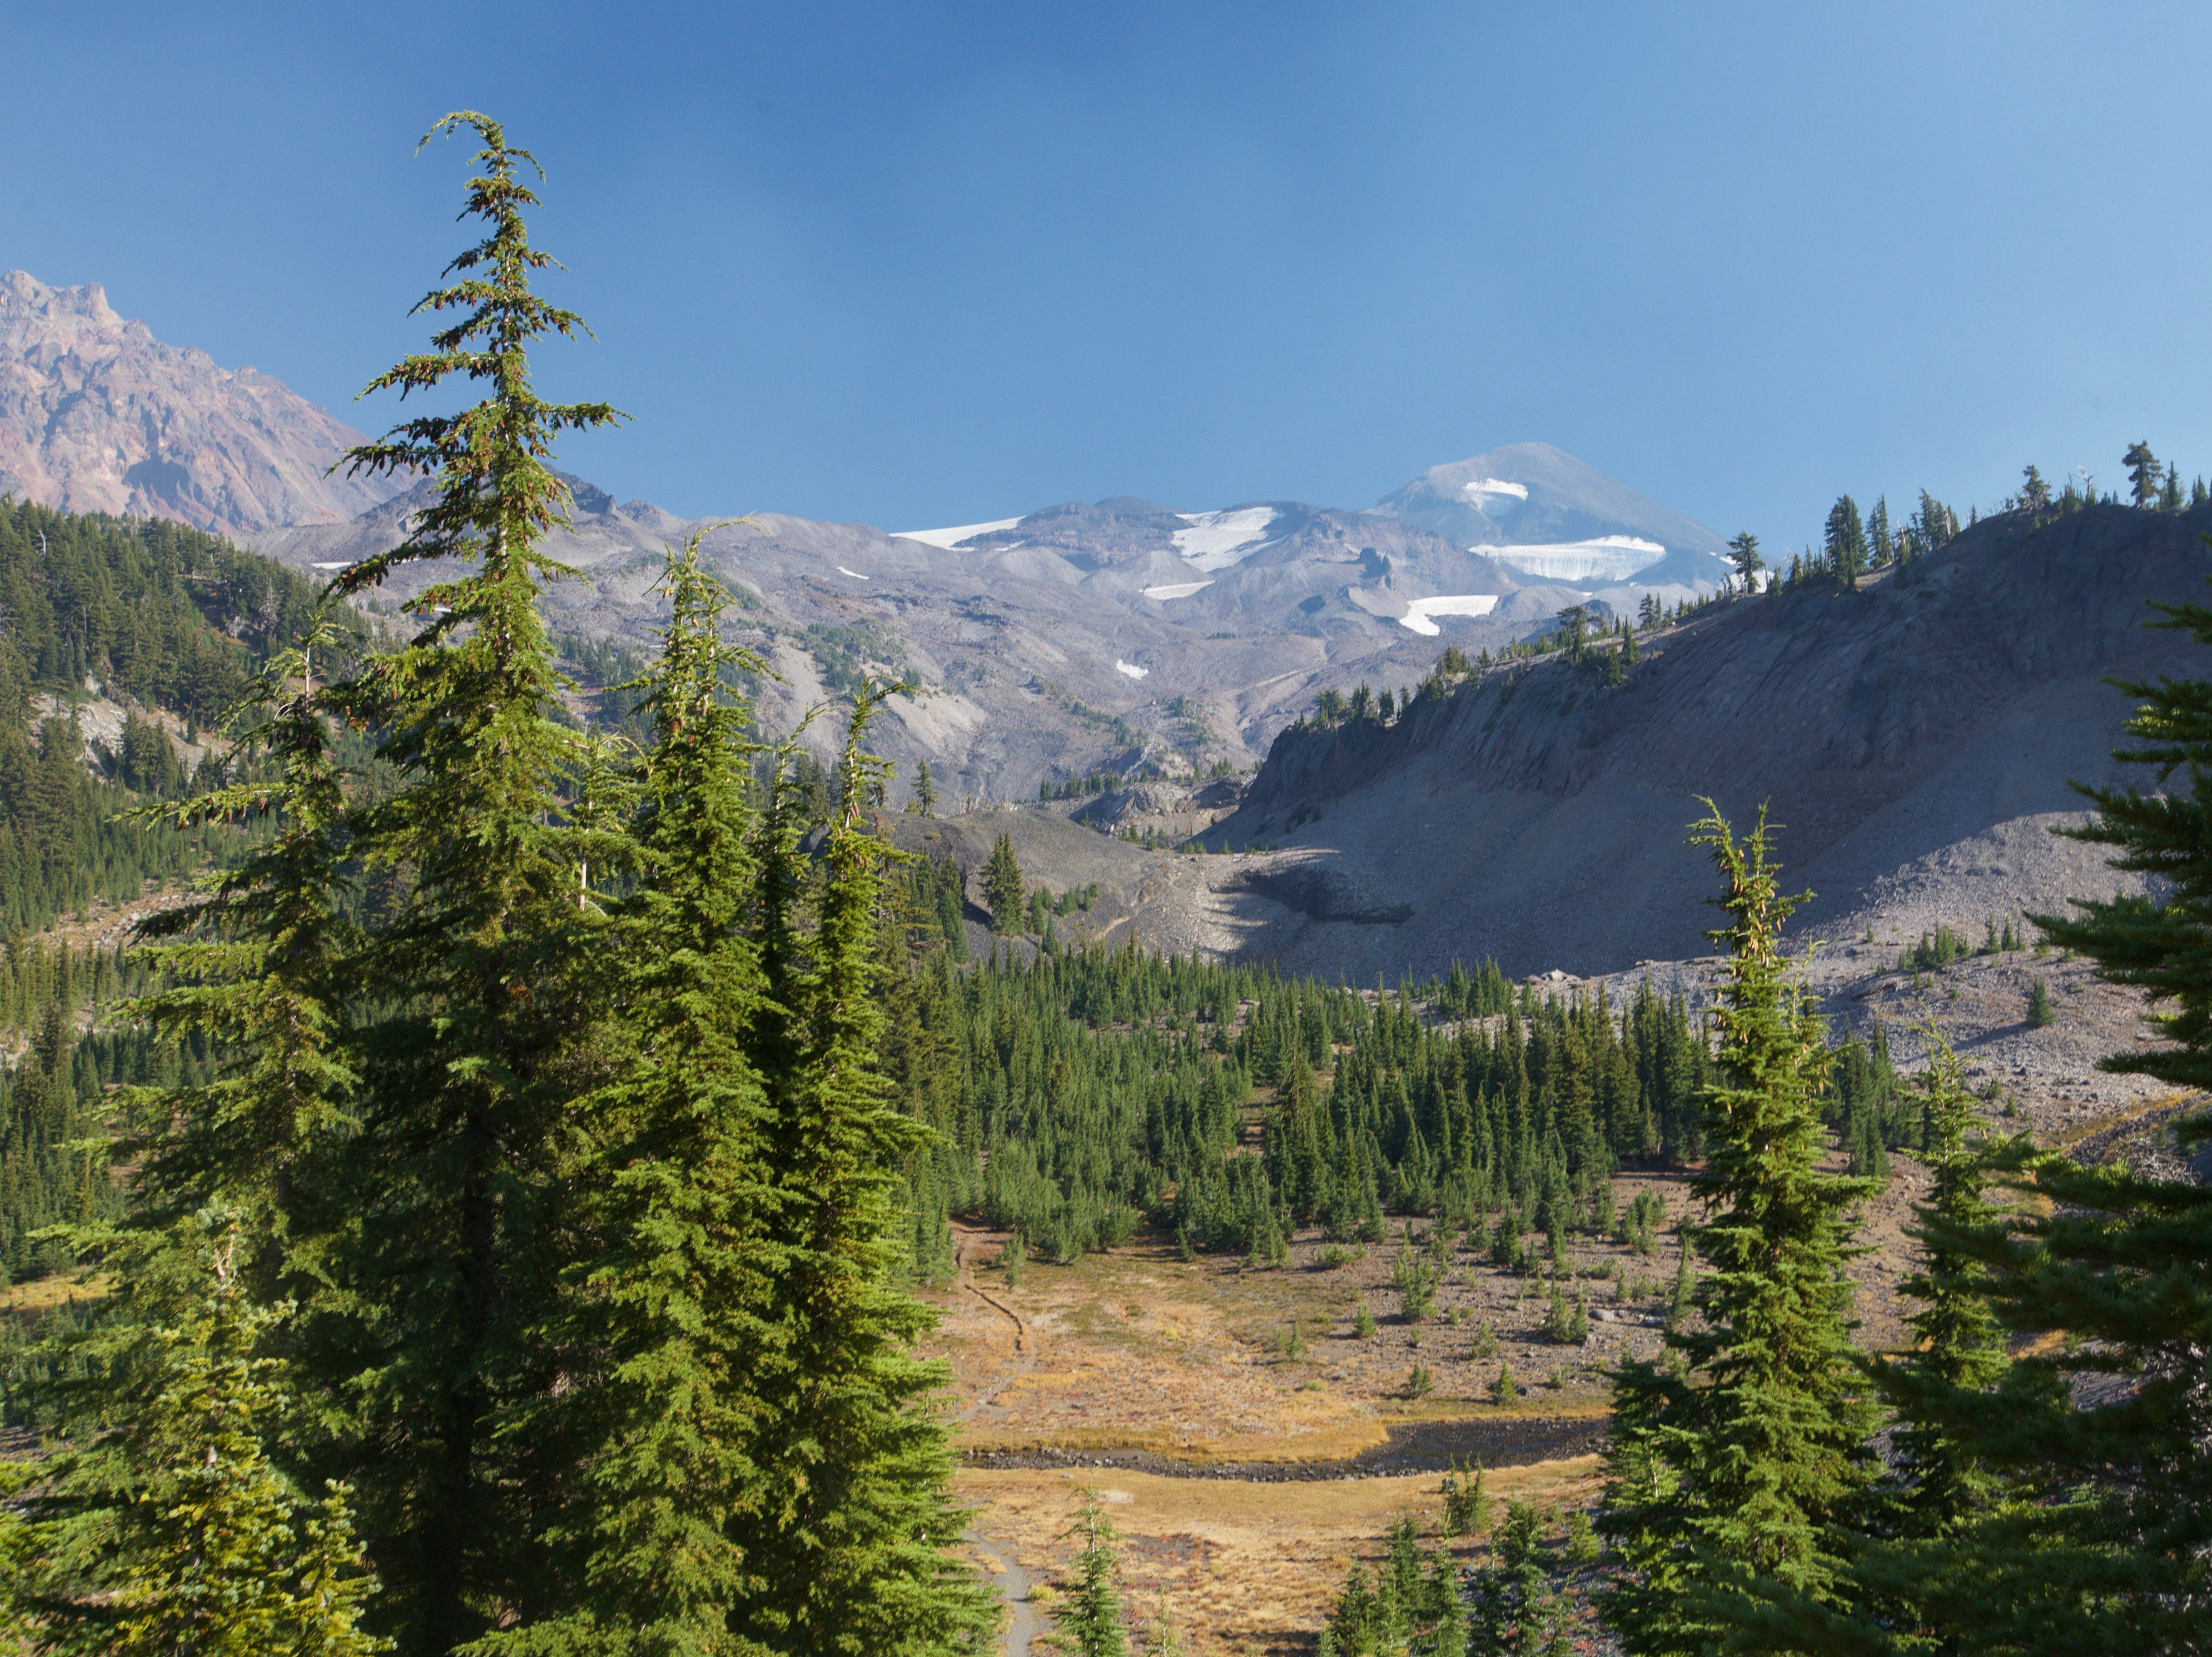 Views of Middle Sister and North Sister from the Obsidian Limited Entry Area.